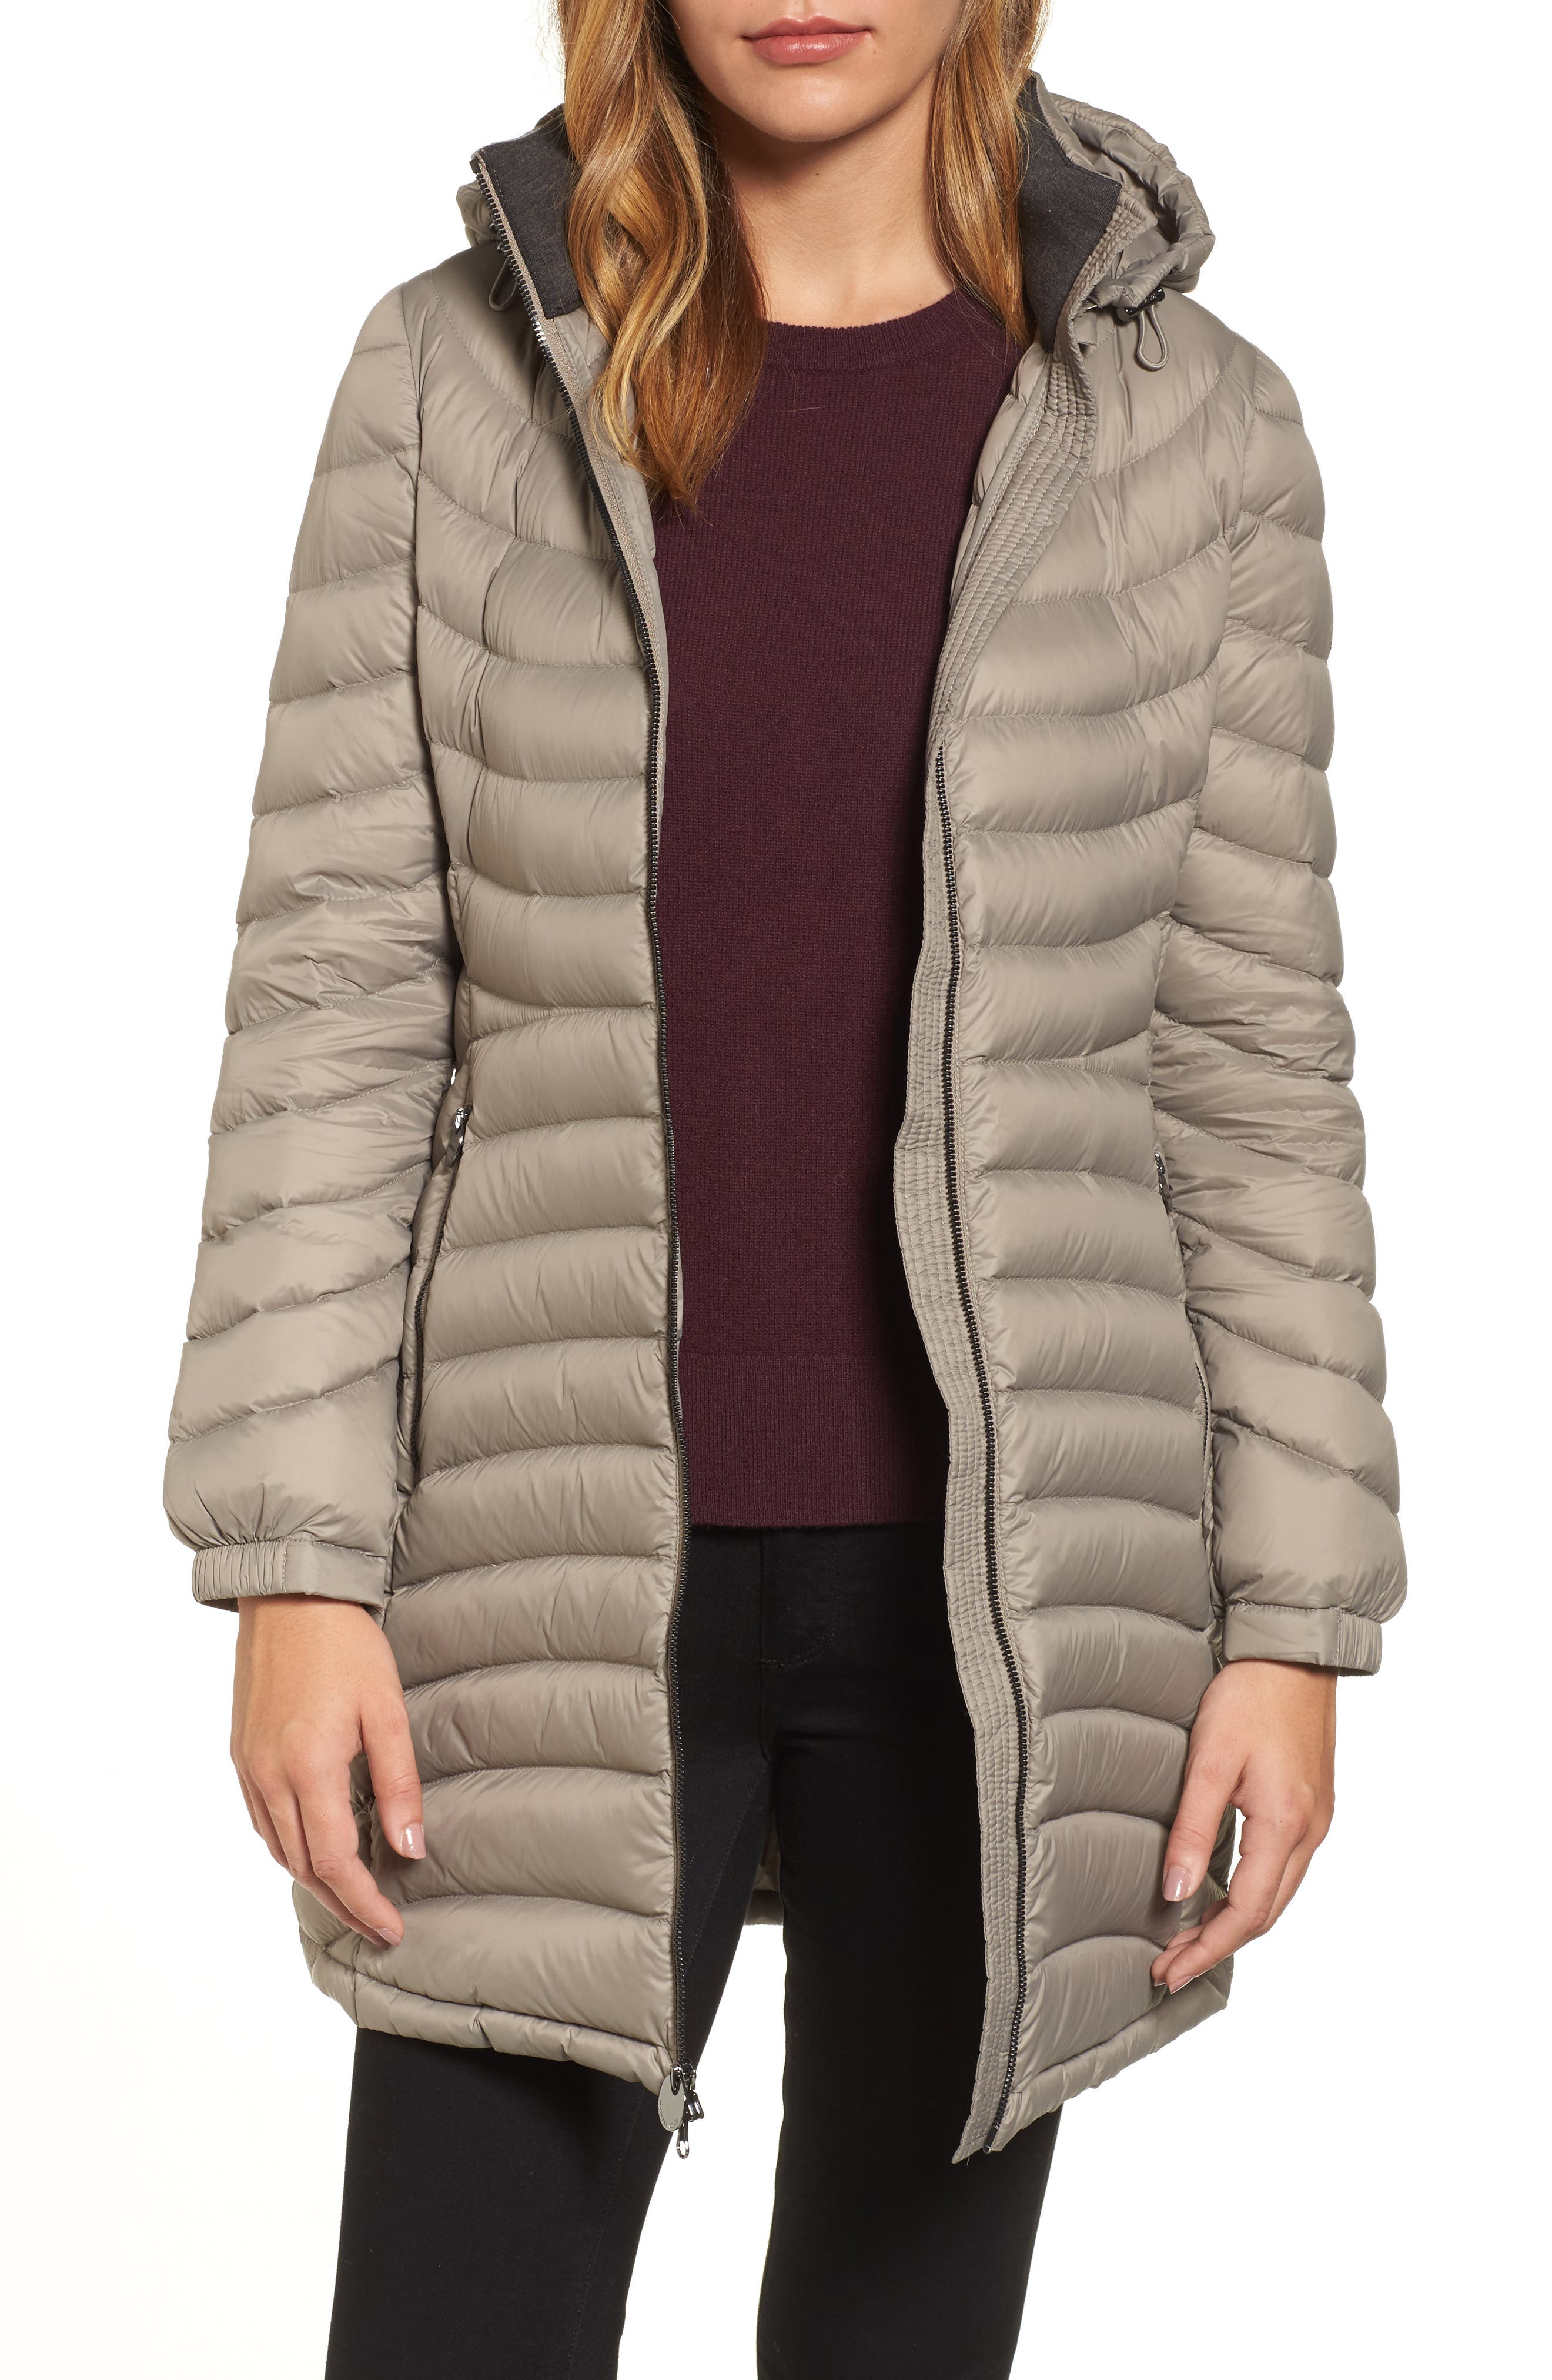 Alternate Image 1 Selected - MICHAEL Michael Kors Hooded Down Coat (Regular & Petite)